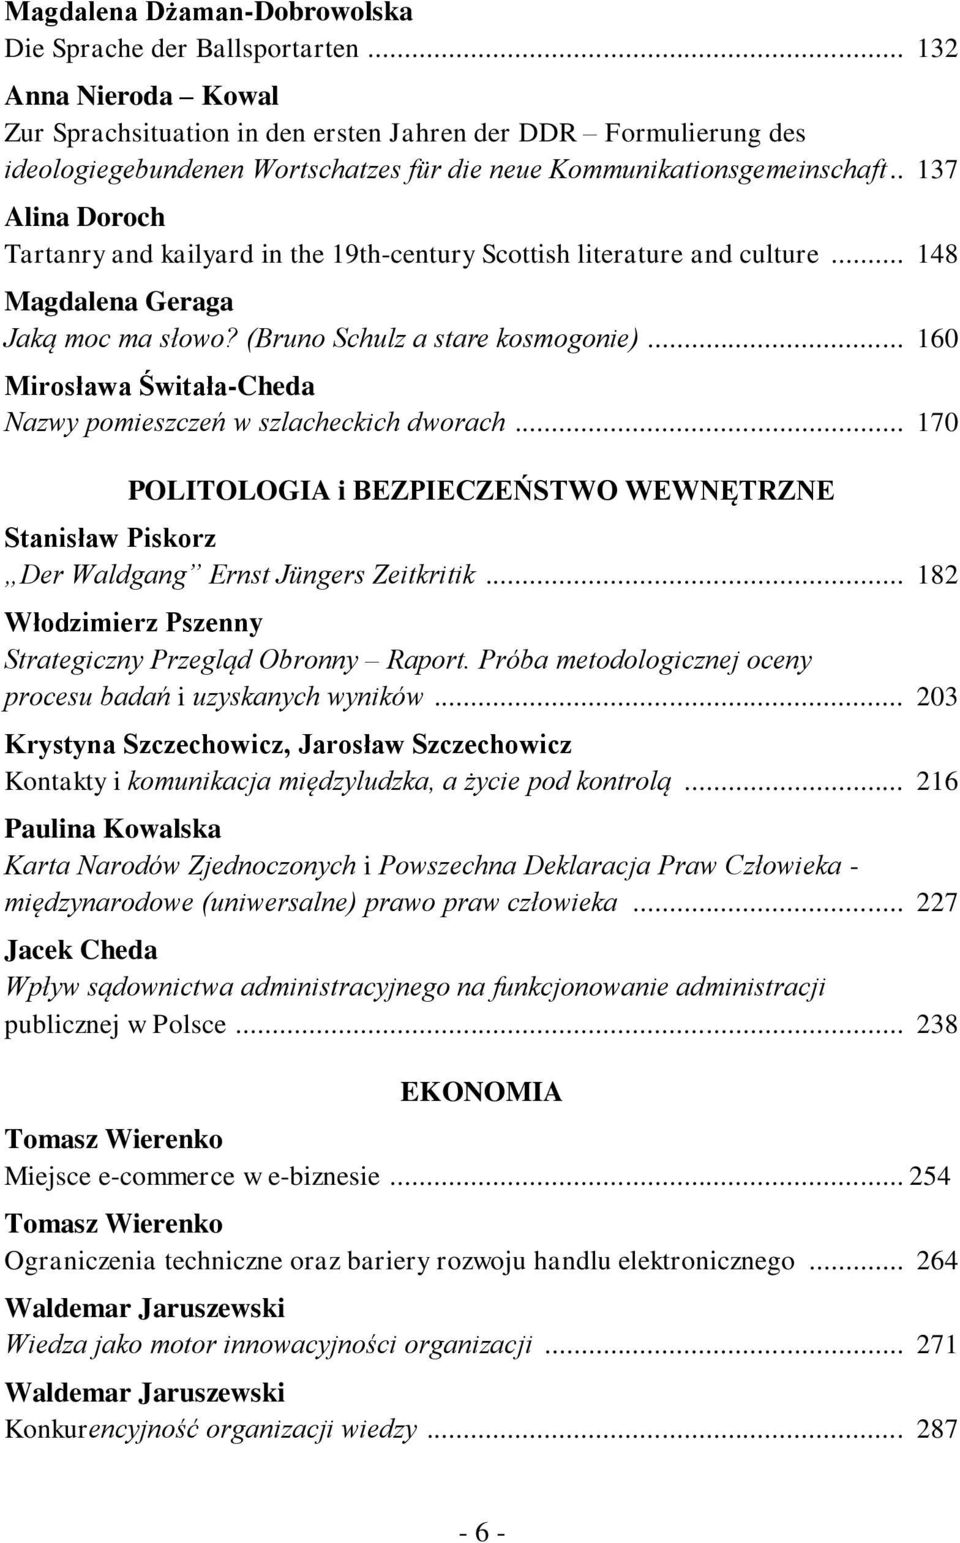 . 137 Alina Doroch Tartanry and kailyard in the 19th-century Scottish literature and culture... 148 Magdalena Geraga Jaką moc ma słowo? (Bruno Schulz a stare kosmogonie).